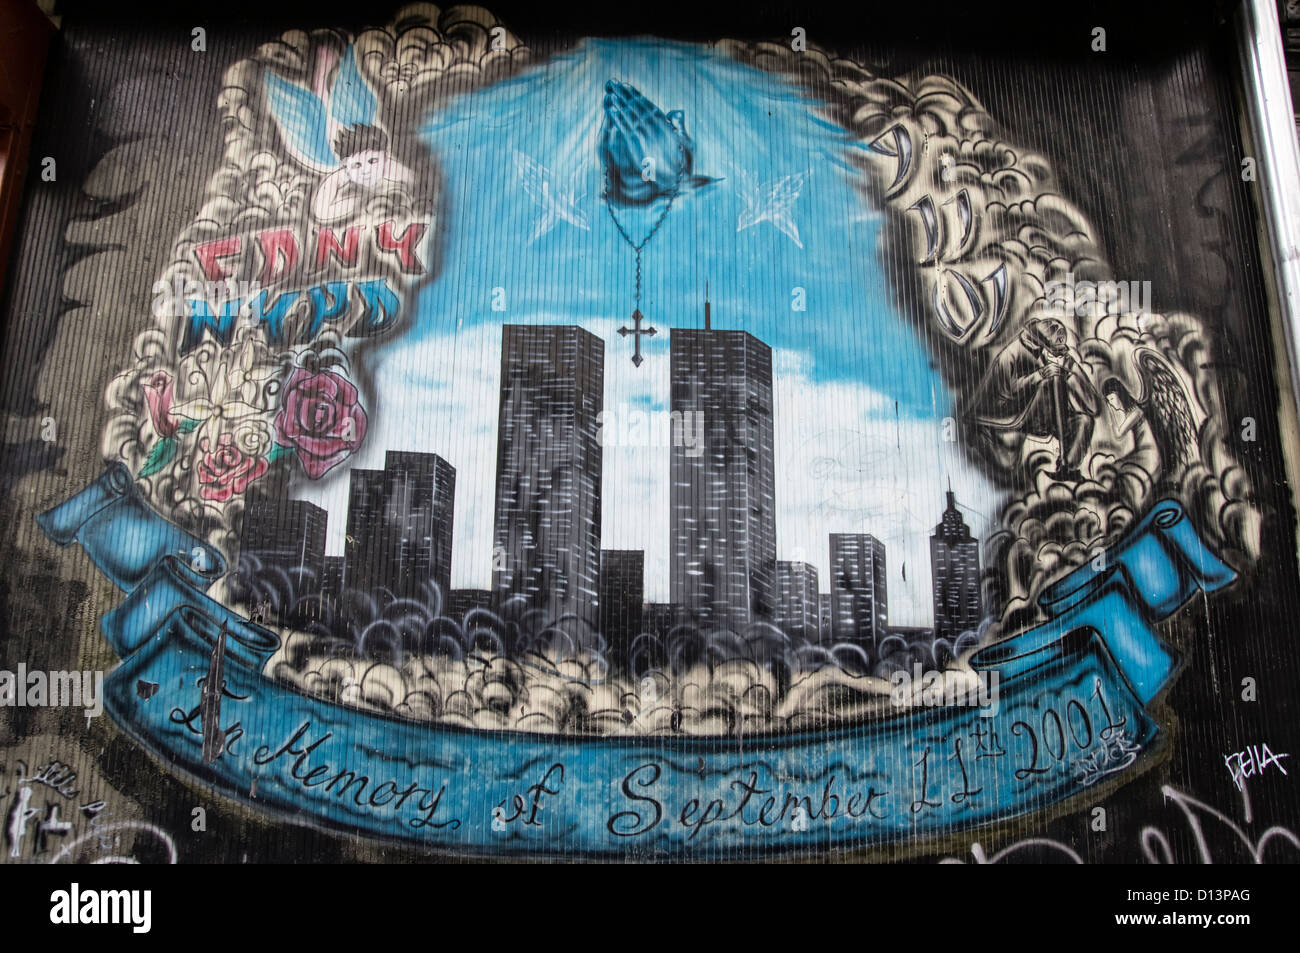 Wall Painting, Memory of September 11 , twin towers, NYC - Stock Image